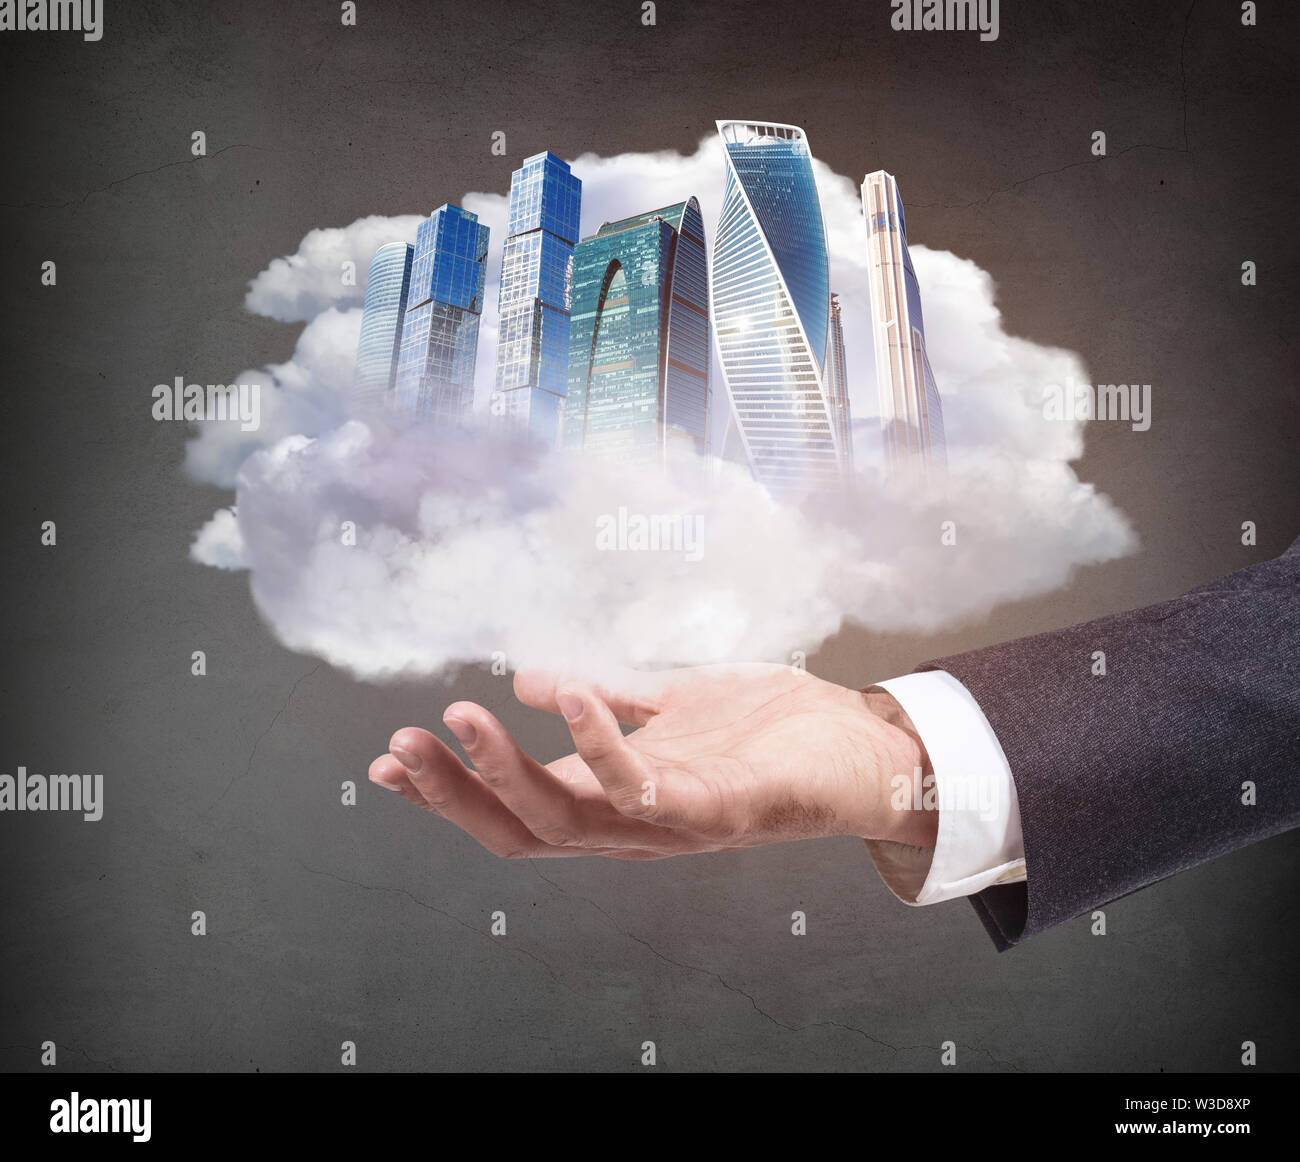 Business hand holds skyskrappers on outstretched hand. Over gray background. - Stock Image